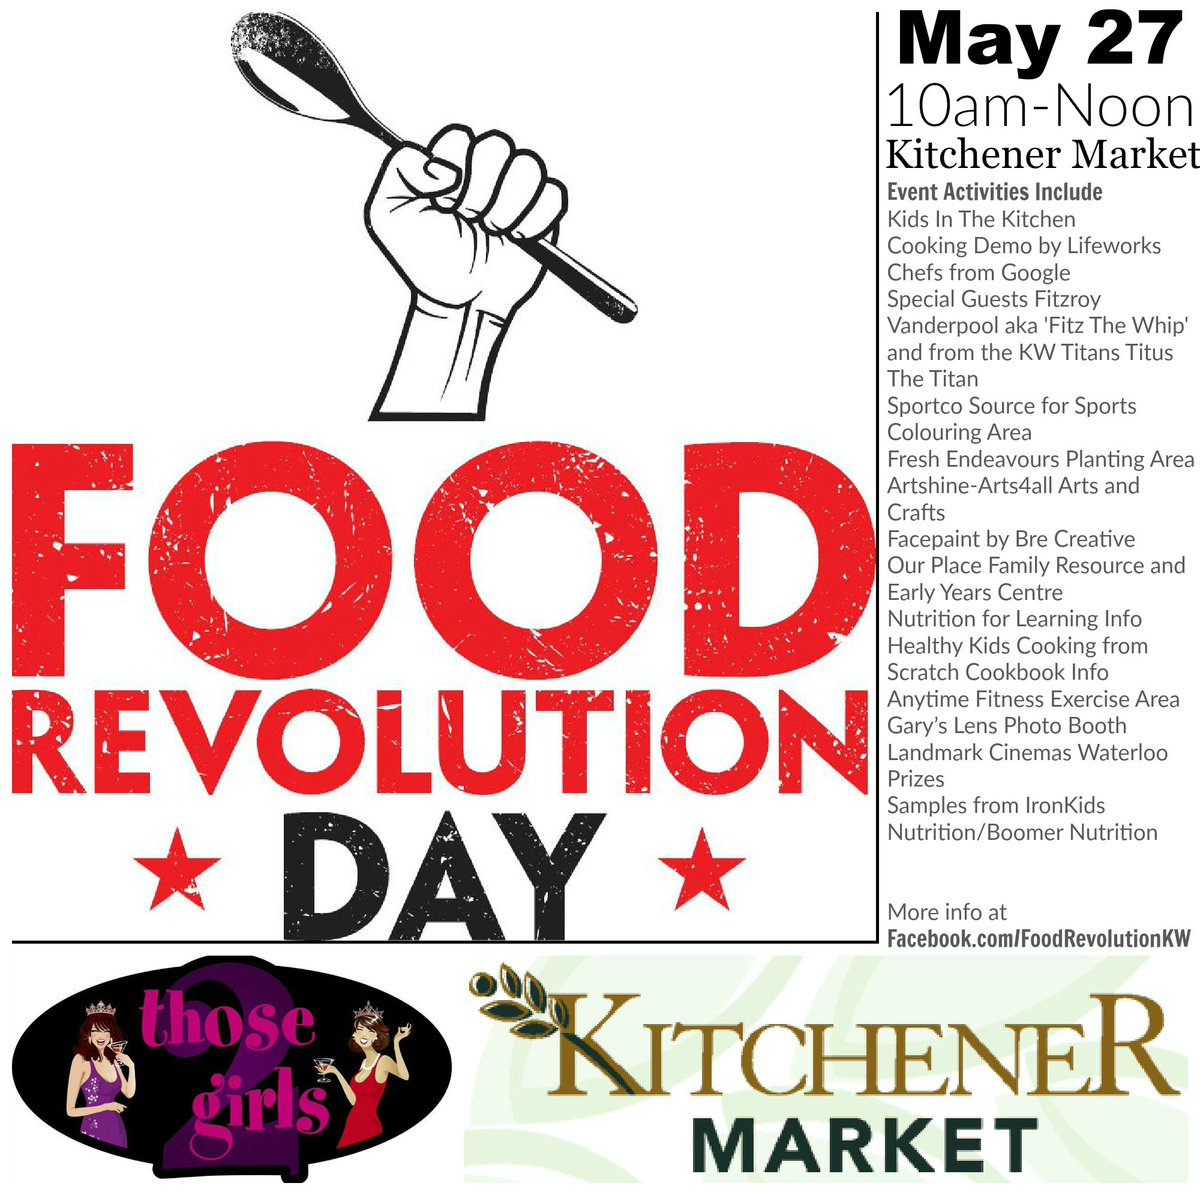 #FoodRevKW Day  @CityKitchener #KitchenerMarket SatMay 27@ 10am #FREE #kwawesome #wrawesome https://t.co/fpvI6zNeMs https://t.co/BOCp2XCpqU